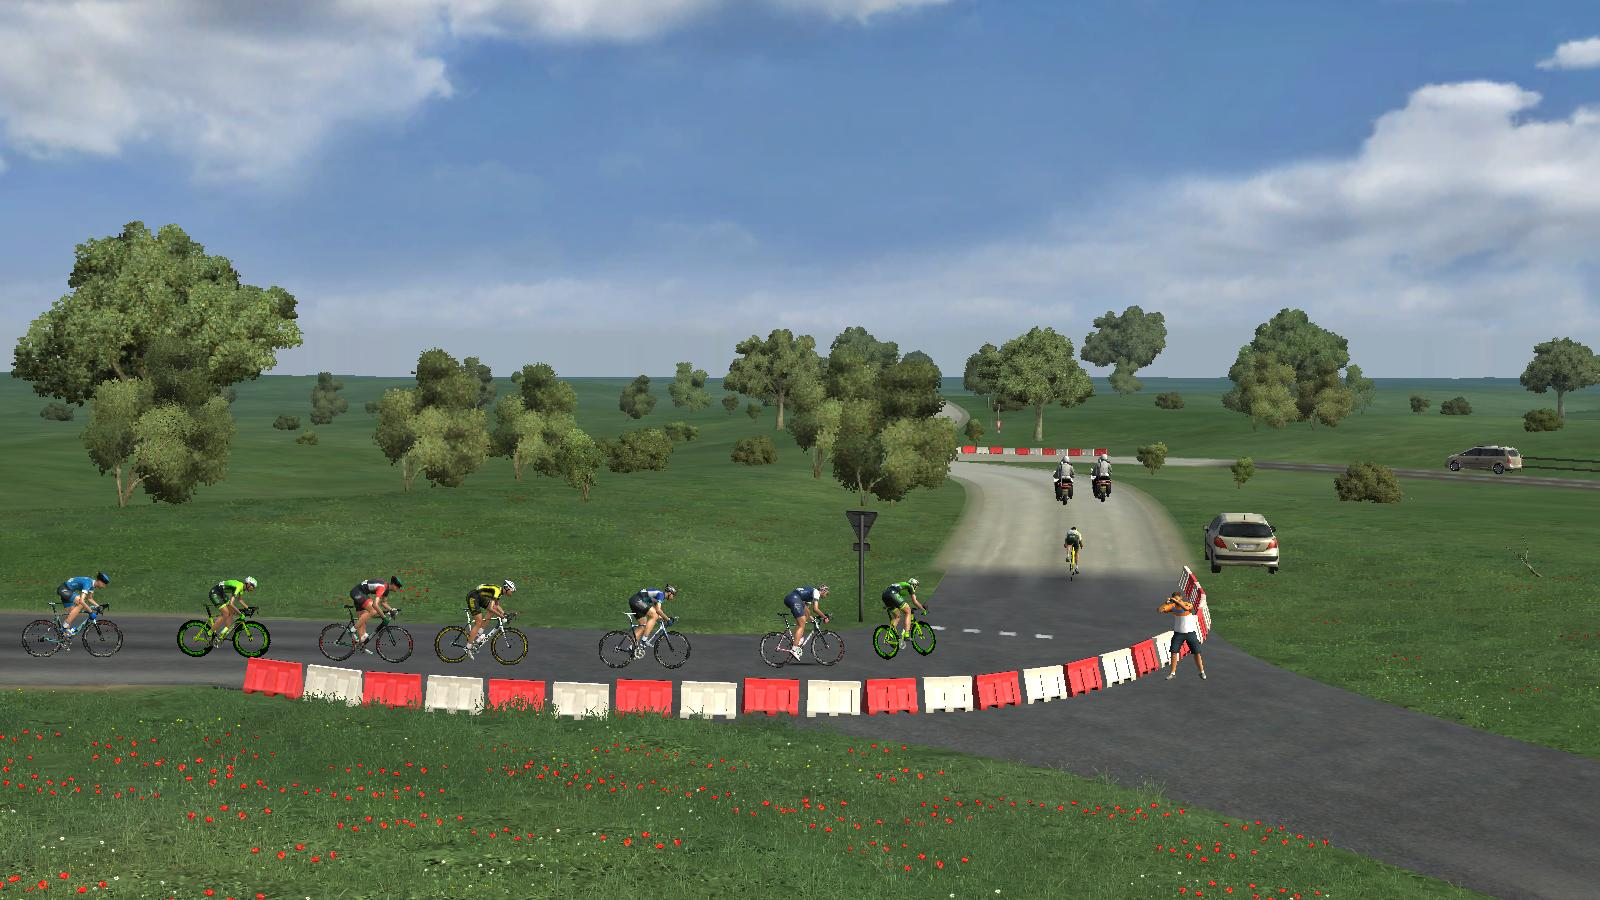 pcmdaily.com/images/mg/2019/Races/PTHC/Rheden/36.jpg